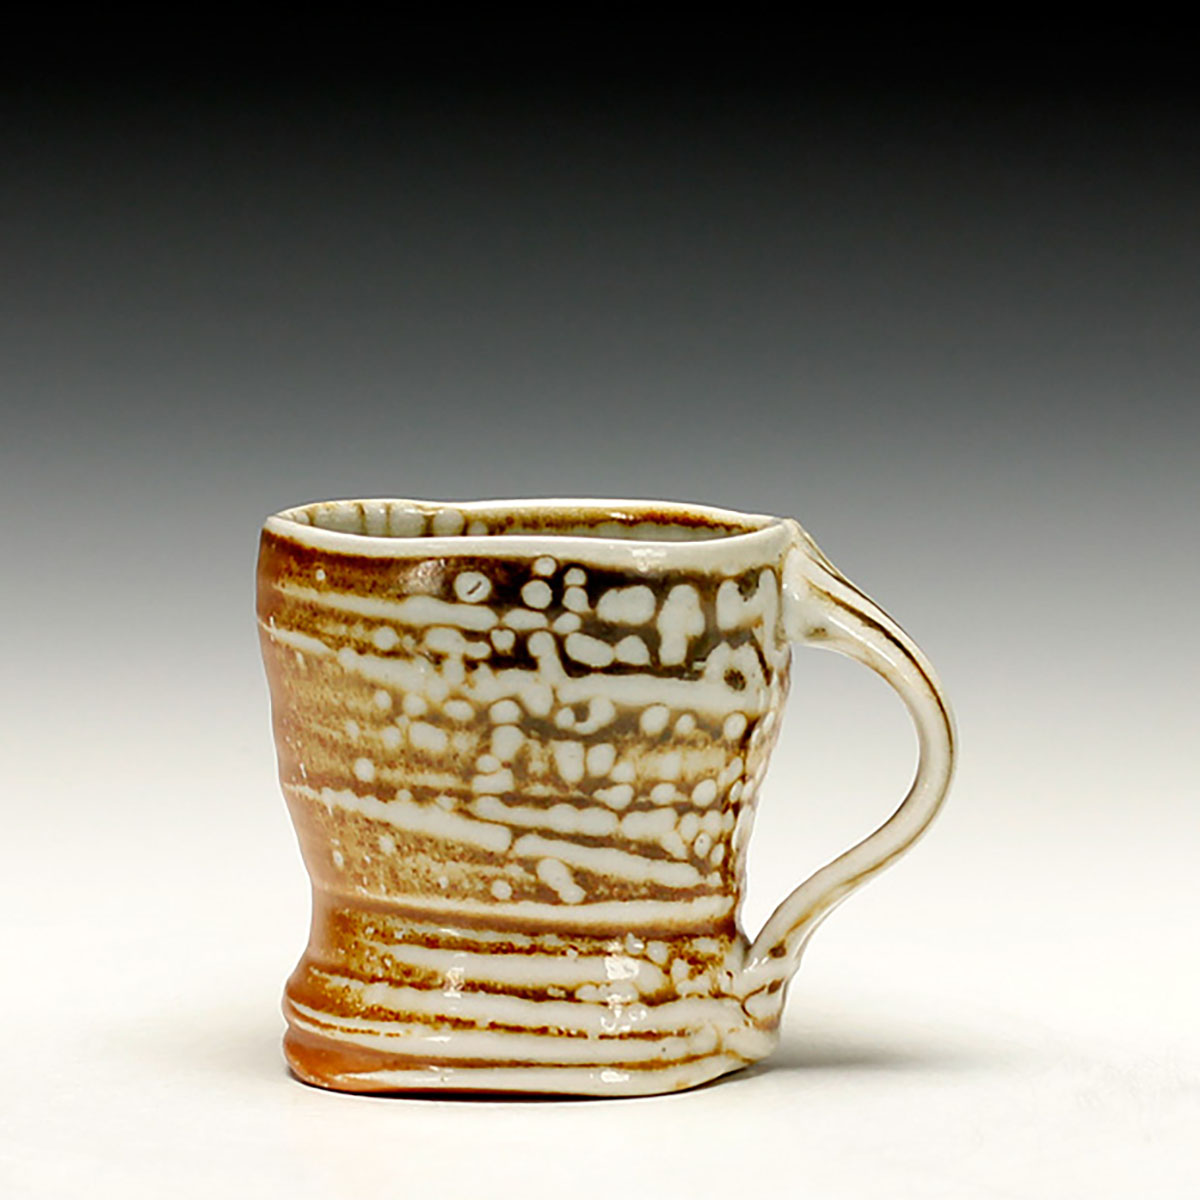 1.  Mug Sandy Lockwood - Mug - woodfired and saltglazed stoneware.jpg